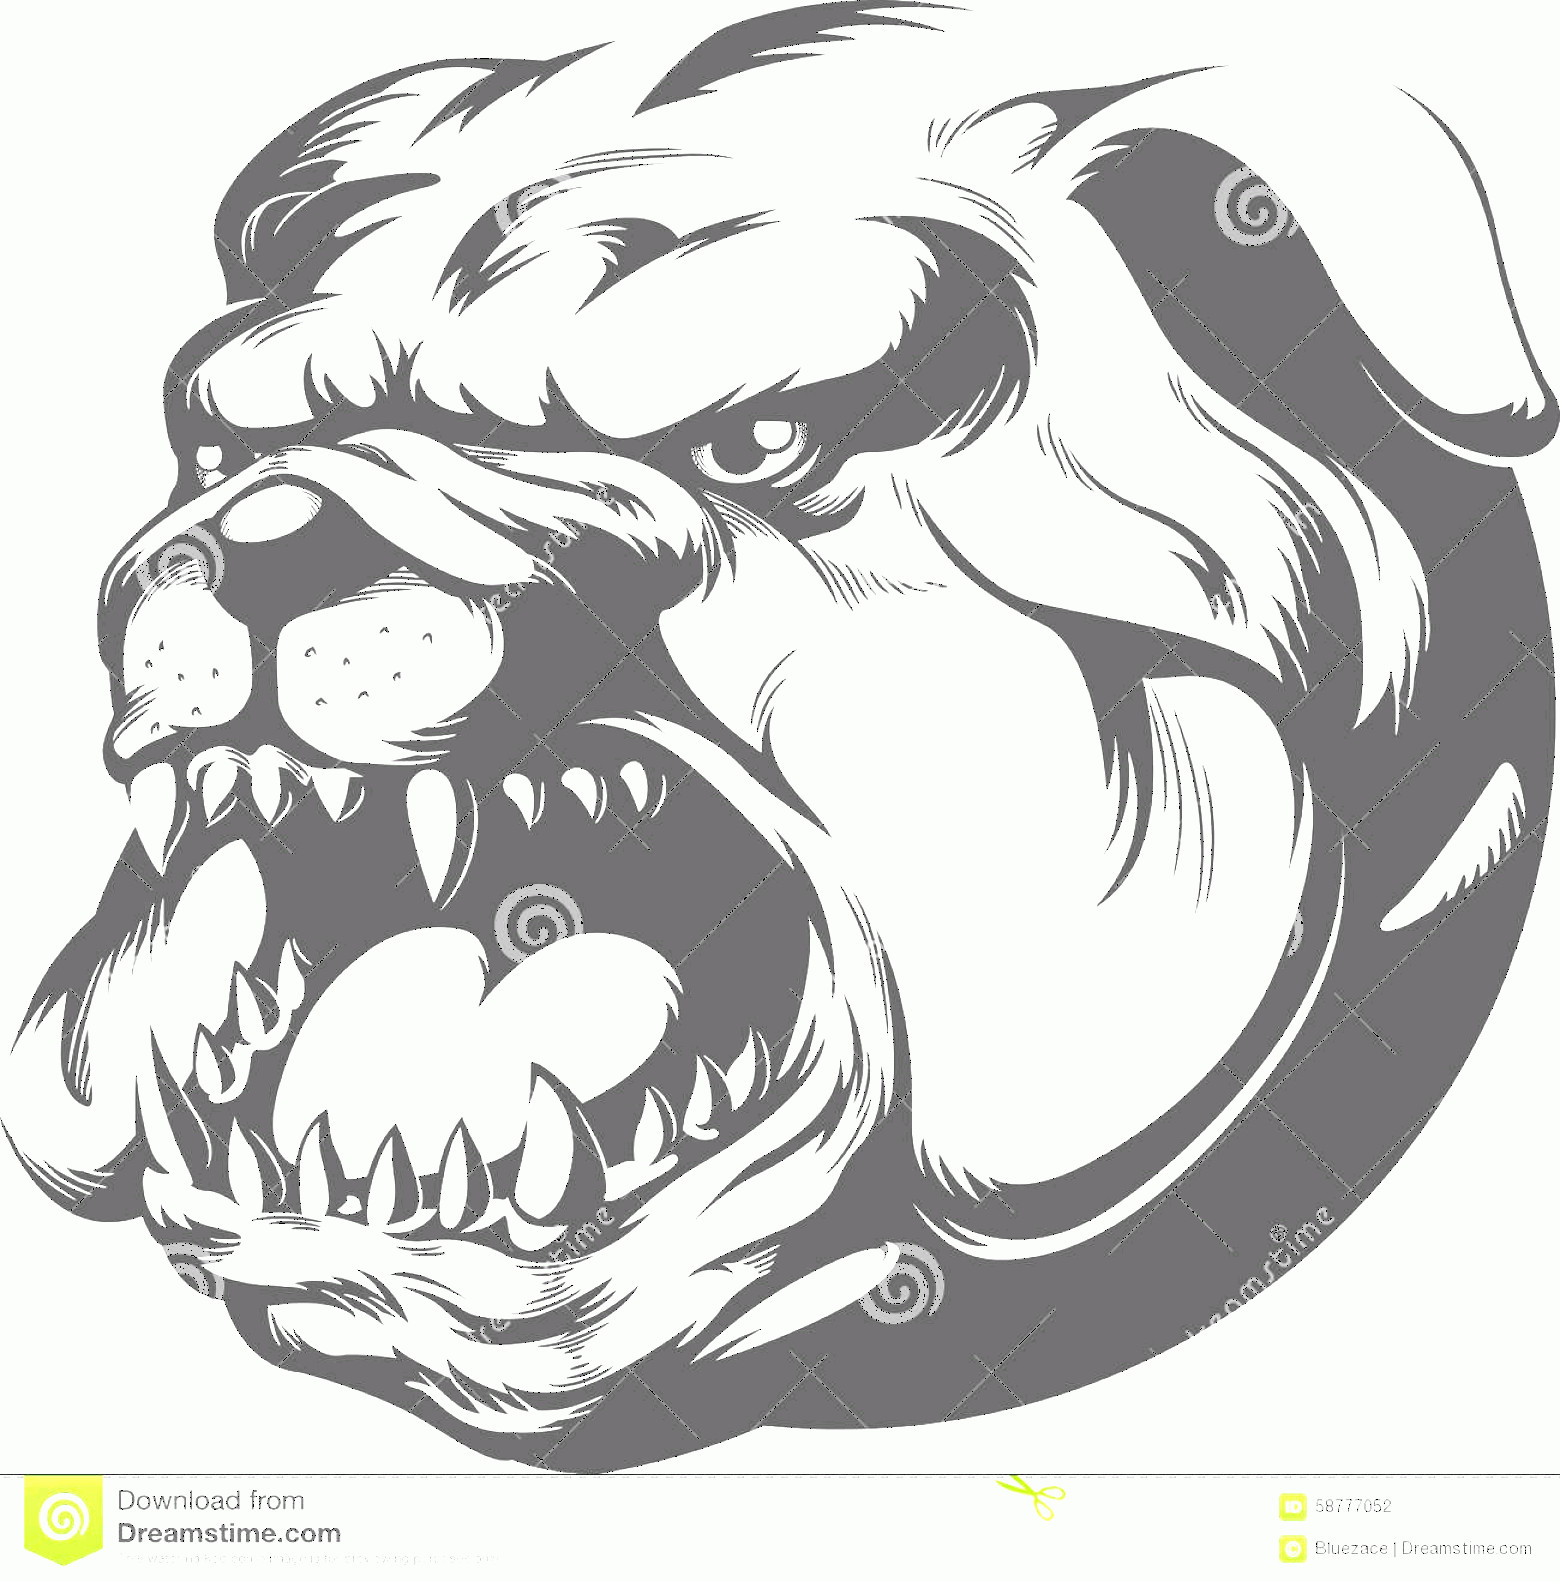 Angry Dog Vector Black And White: Stock Illustration Bull Dog Vector Silhouette Image Angry Very Good Design Needs Head Element Image